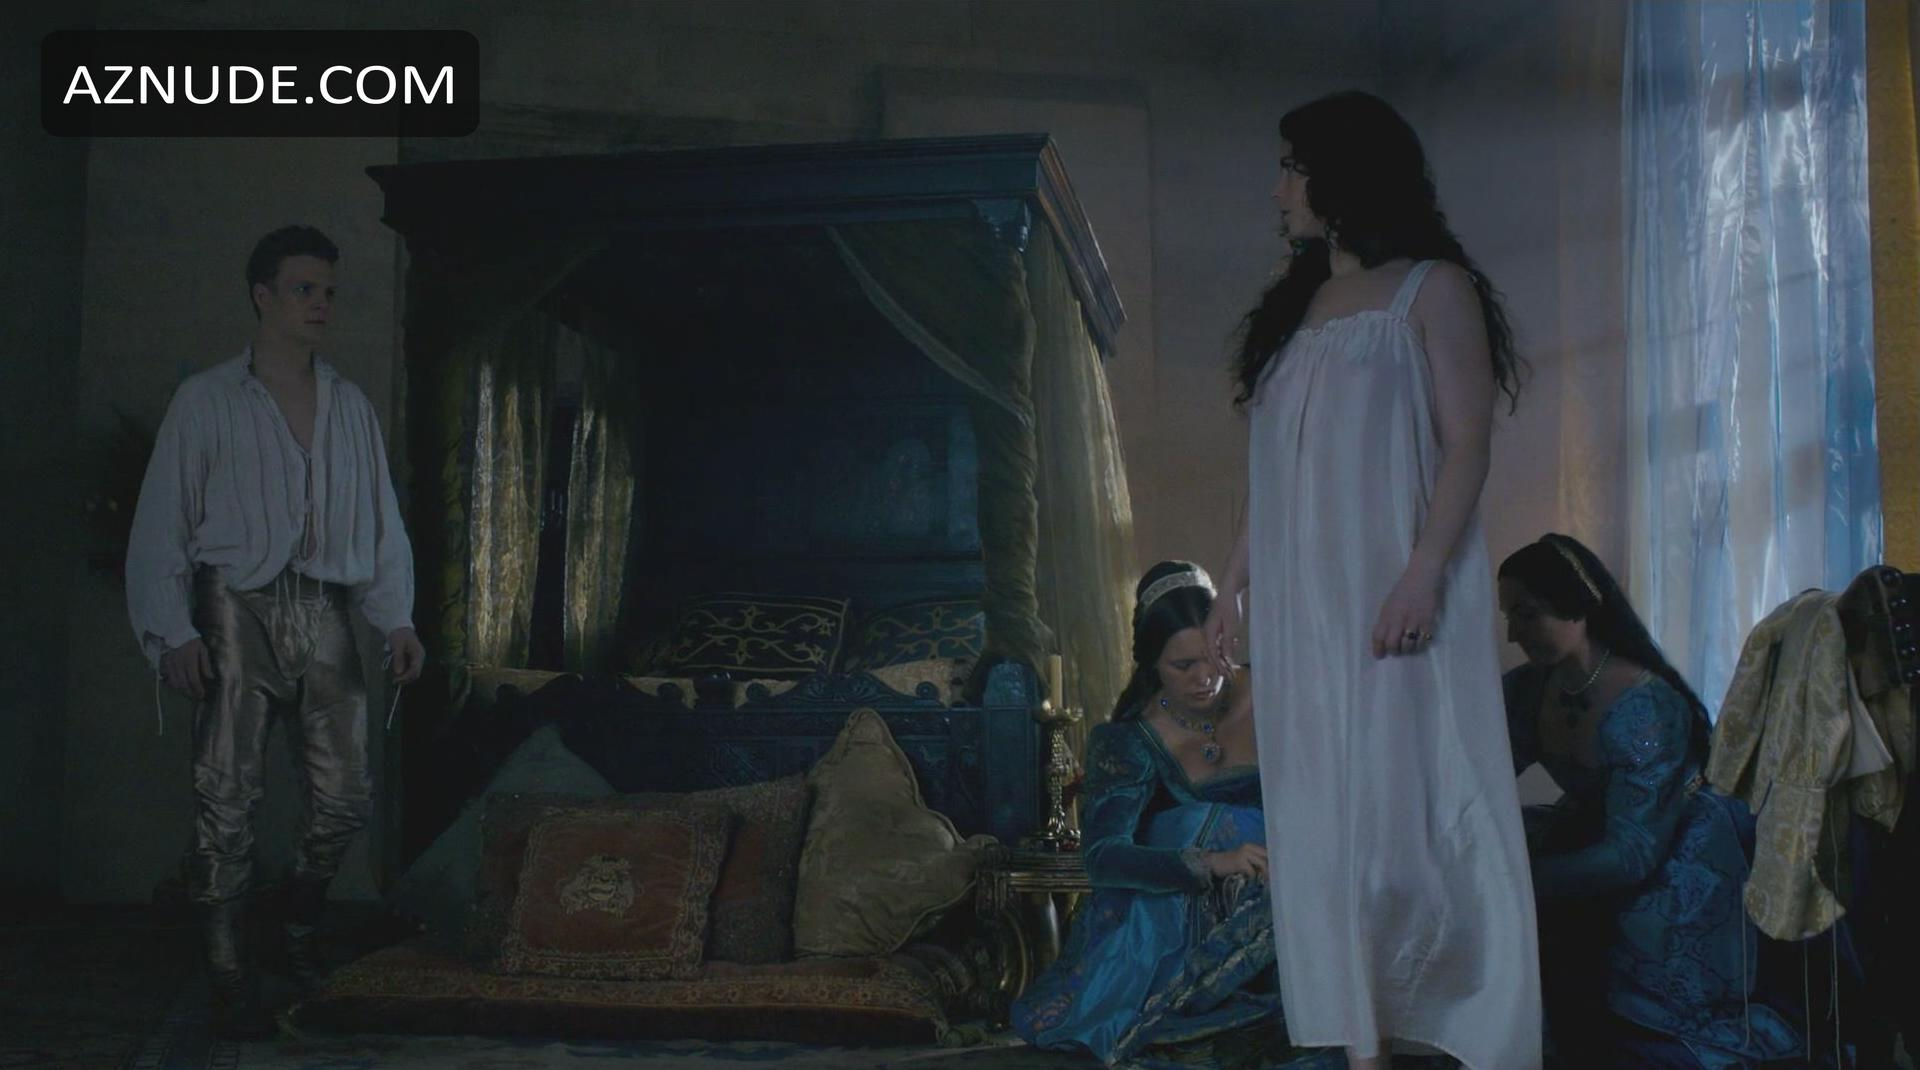 Erotica Amy Manson nudes (85 foto and video), Sexy, Is a cute, Feet, cleavage 2018